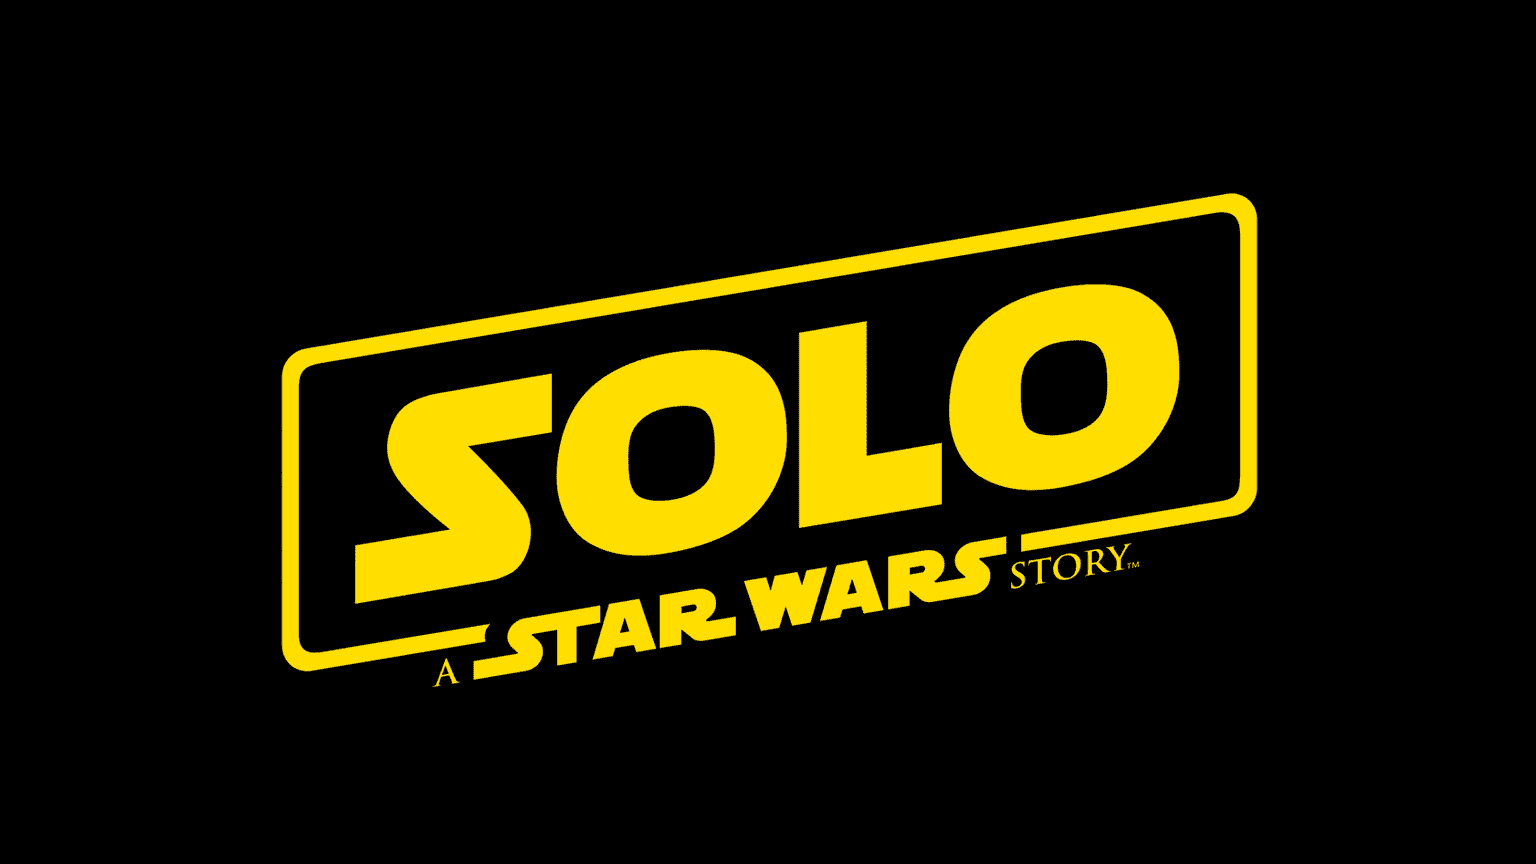 Name of new Star Wars Story film is revealed as Solo: A Star Wars Story - no surprise there then!